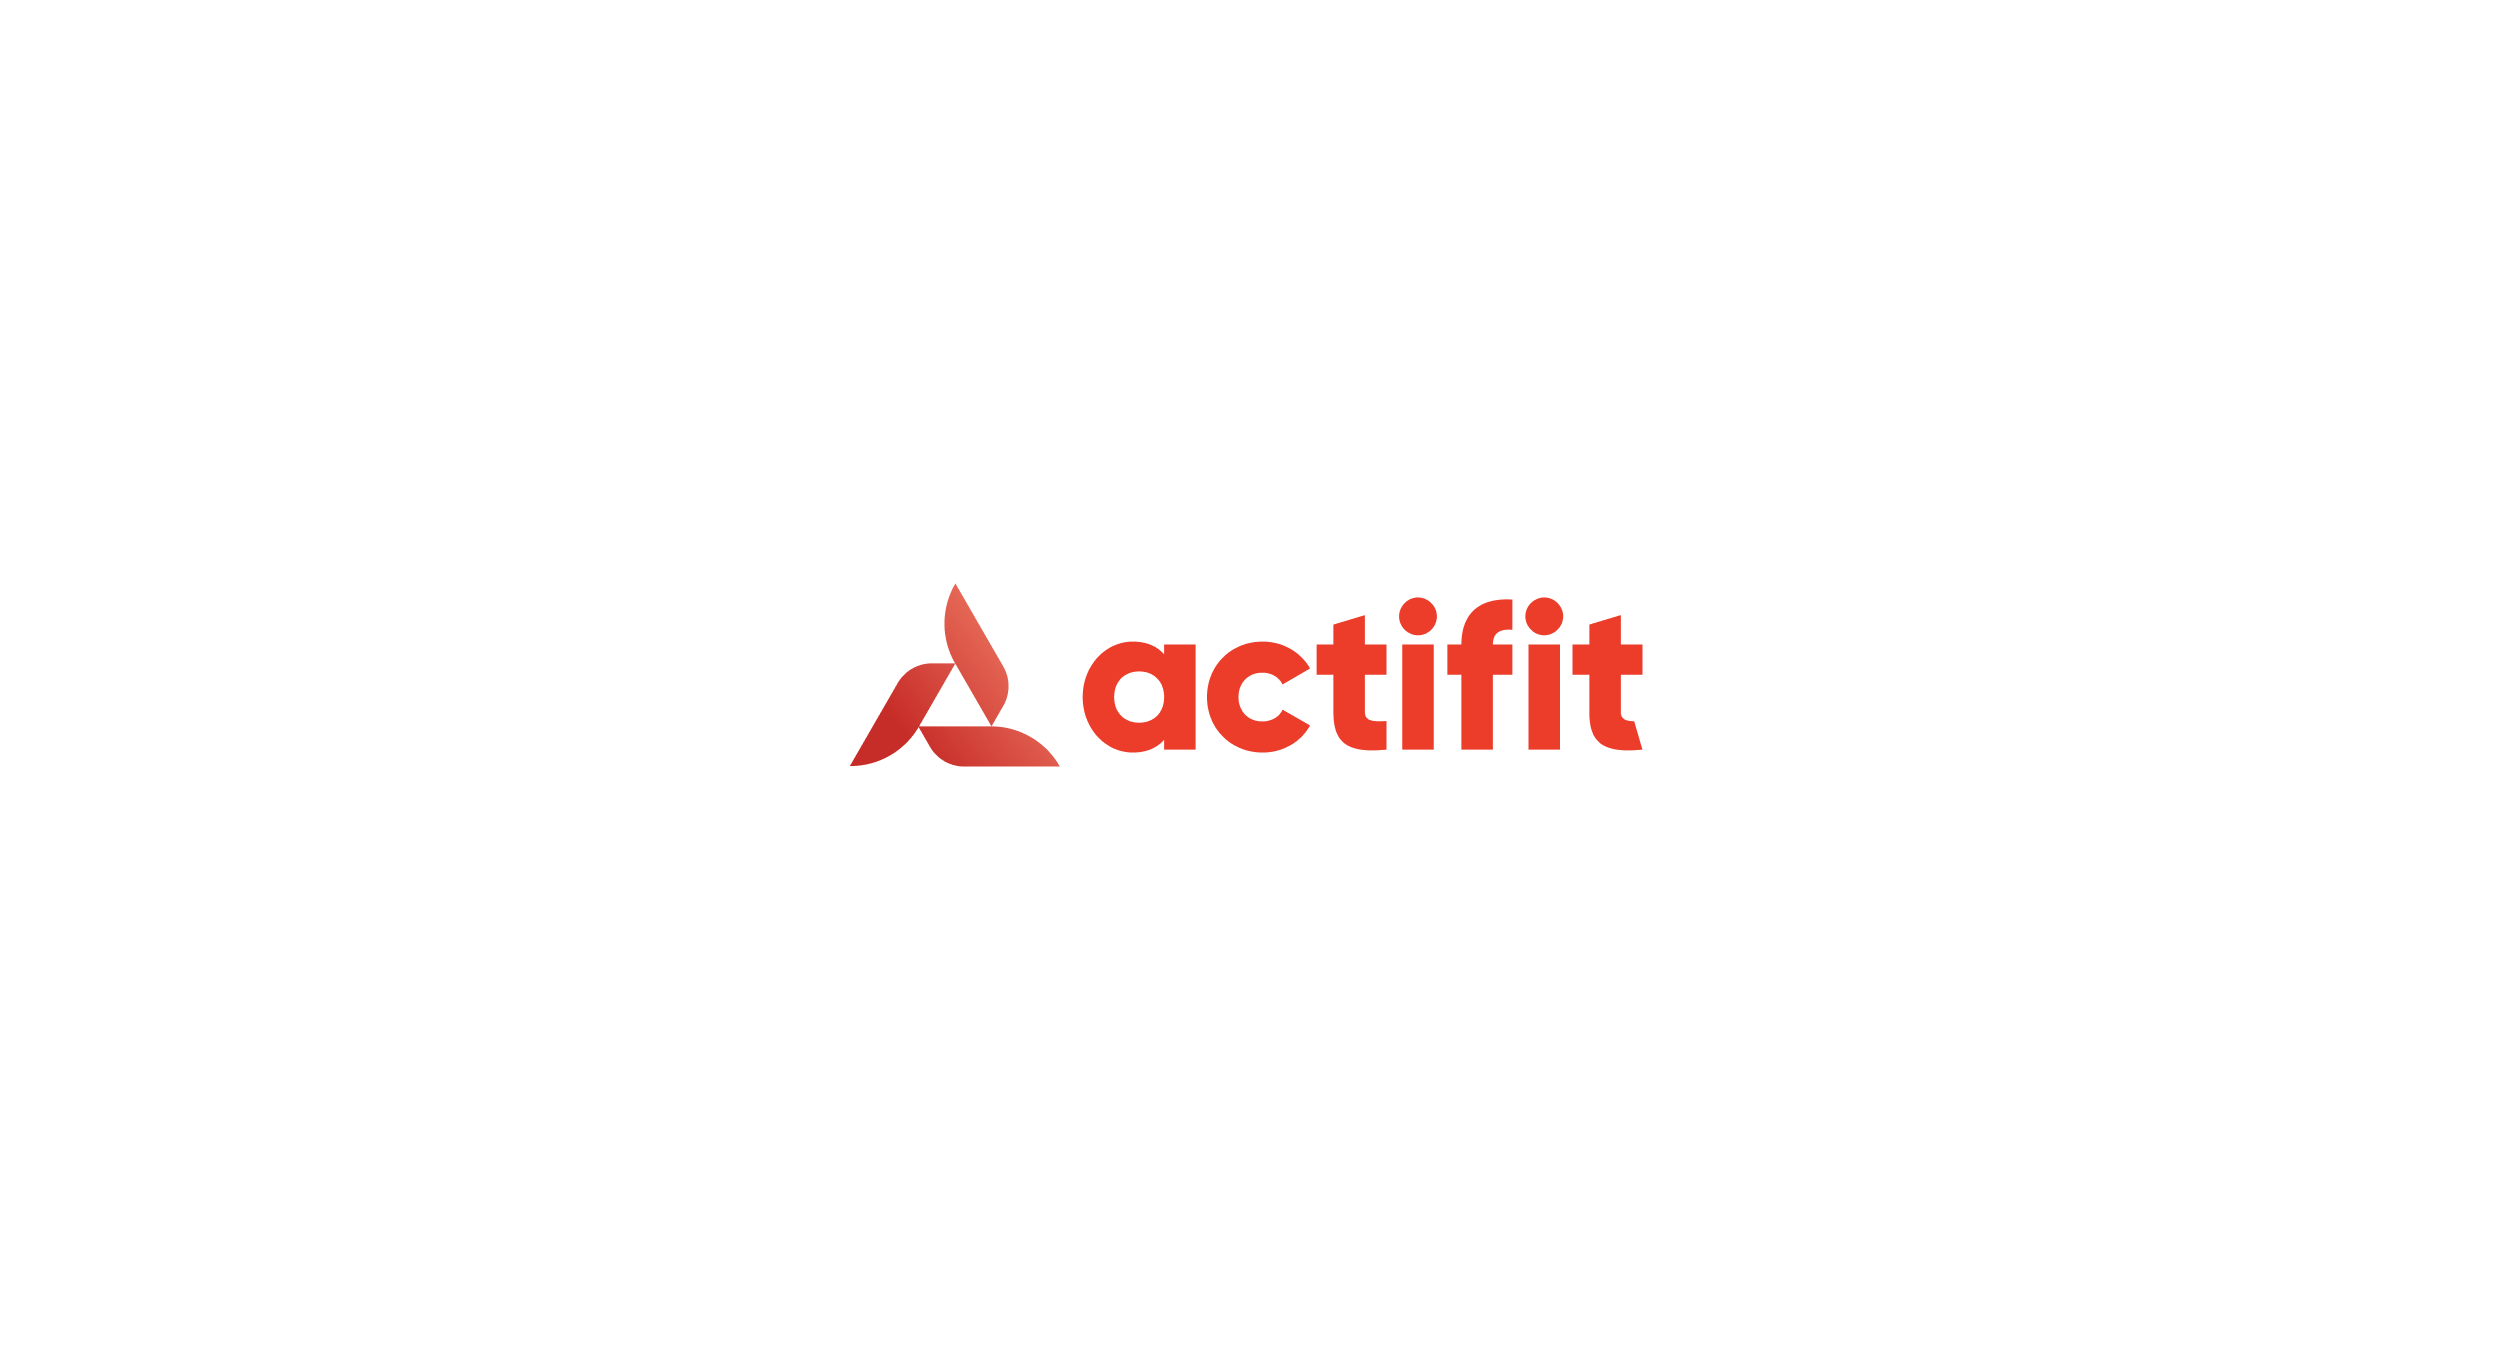 actifit-redesign-type-and-color.png